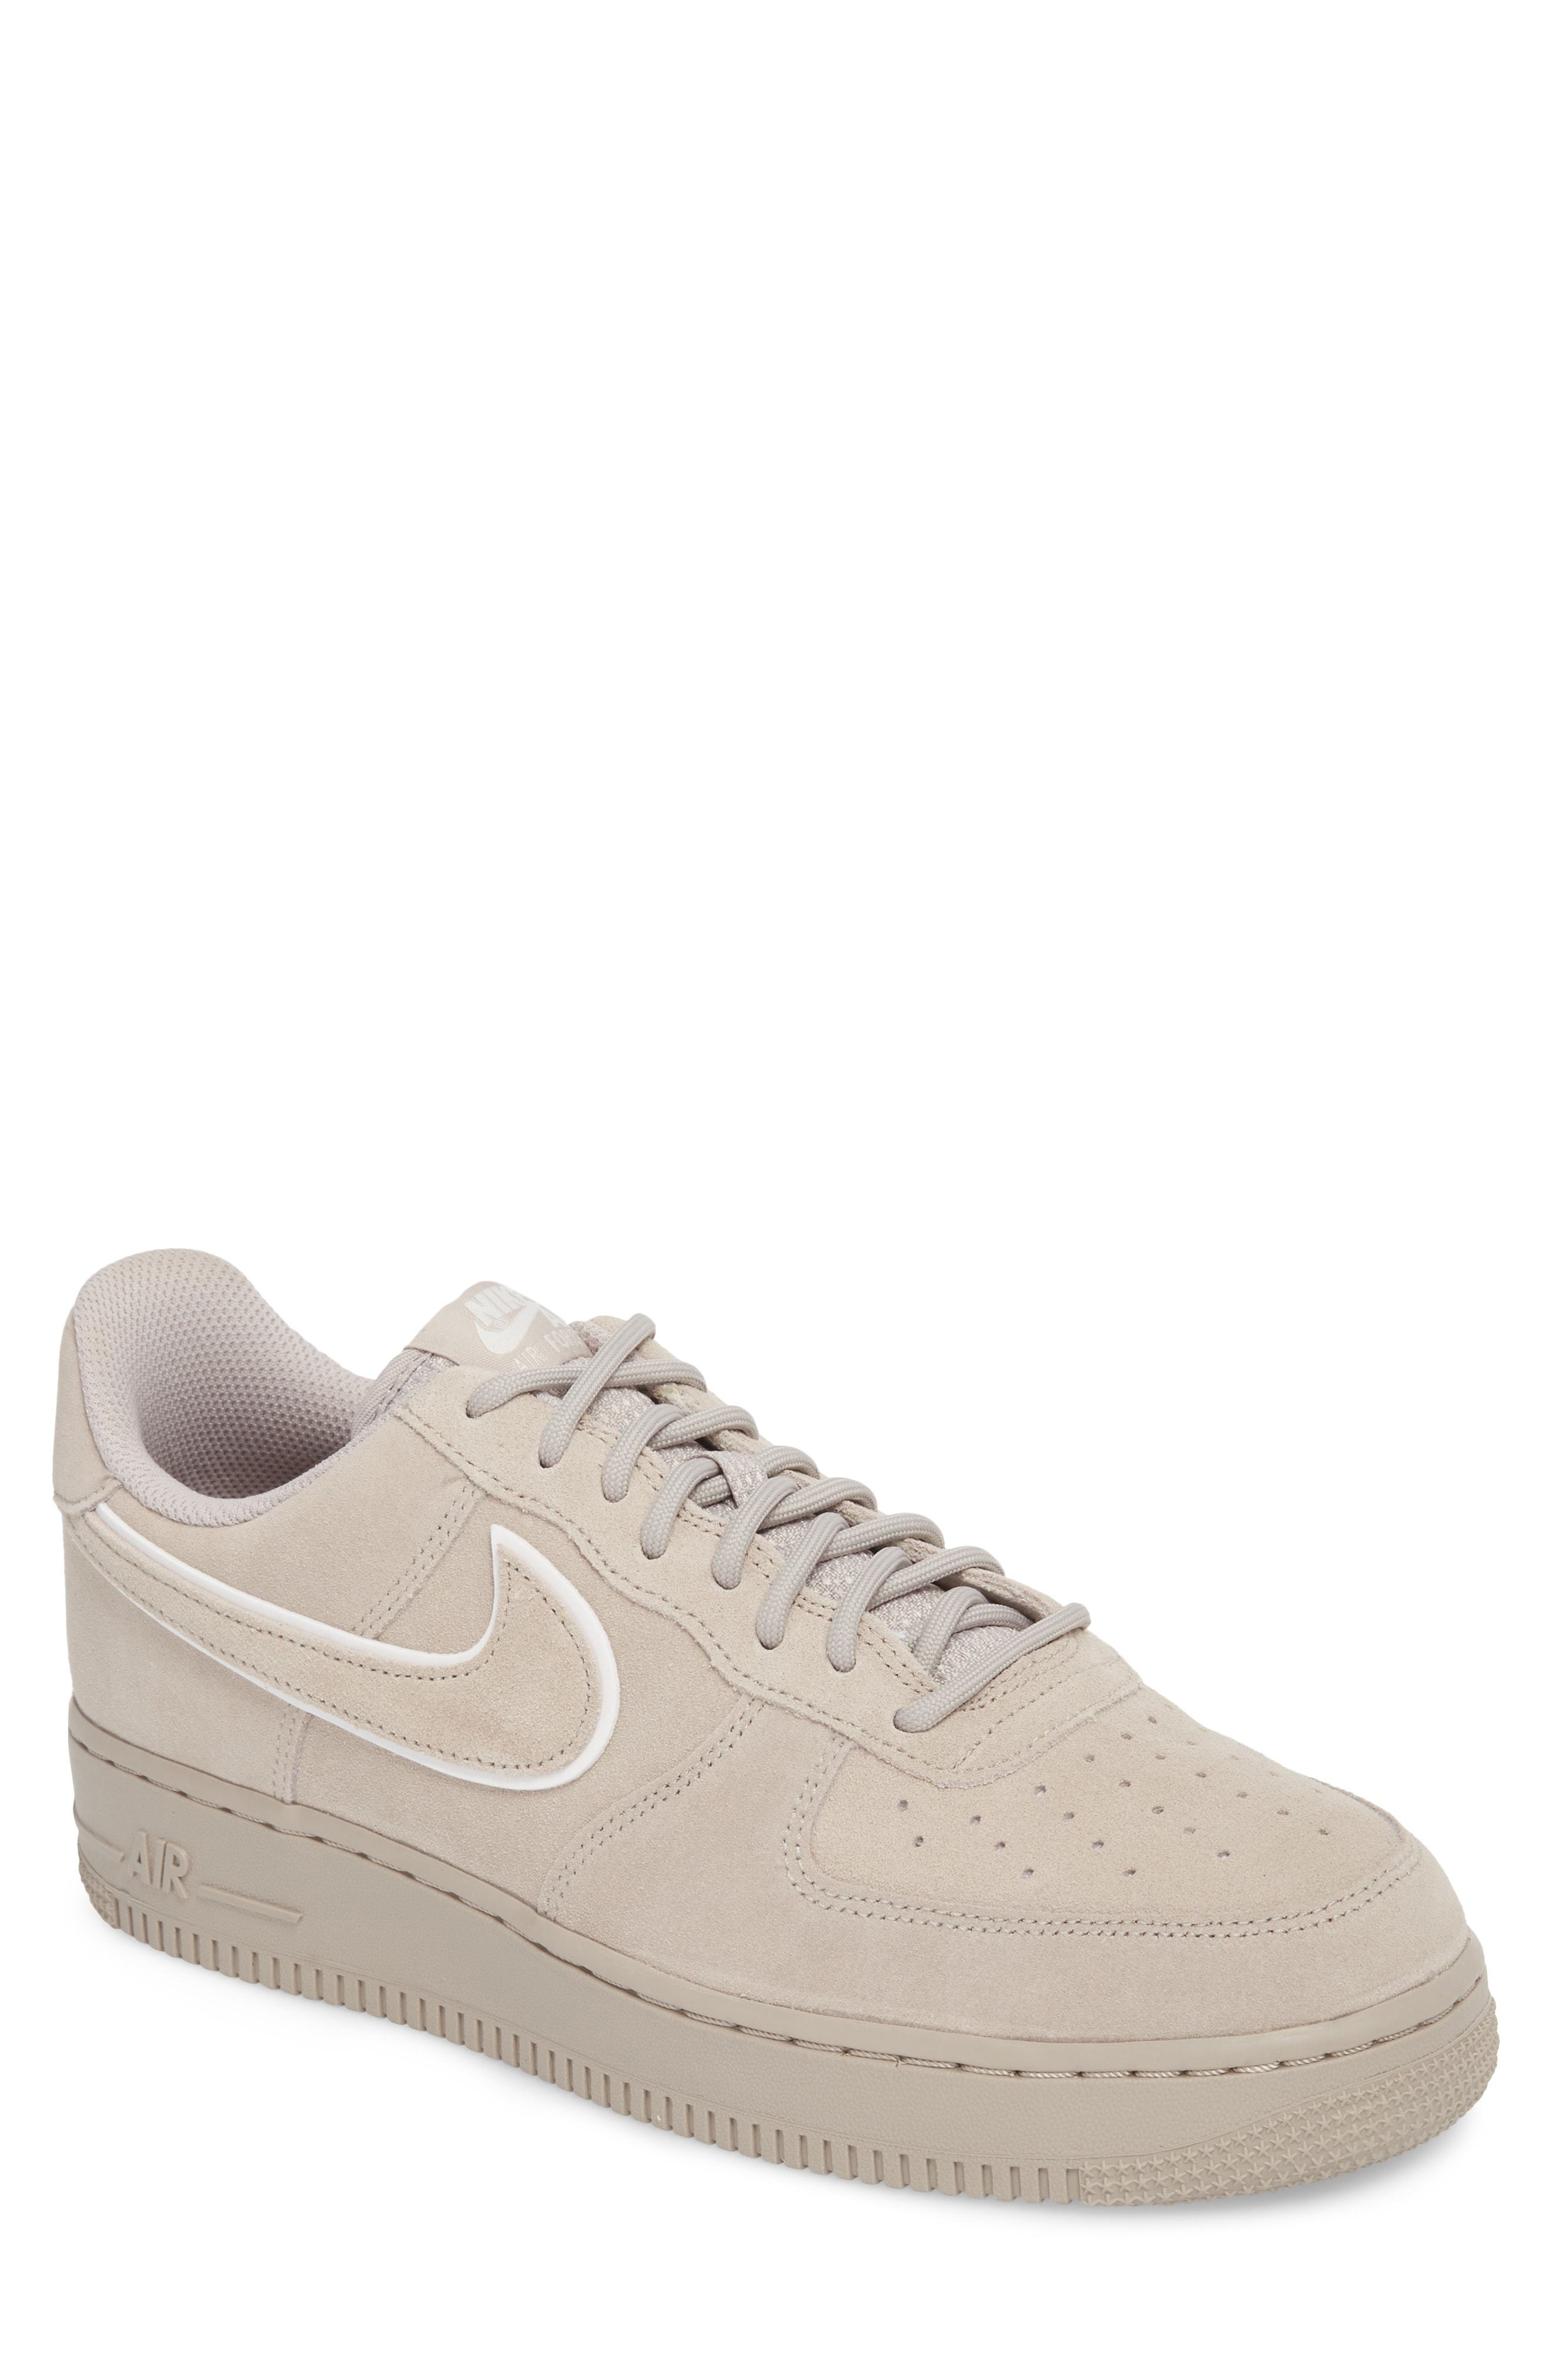 rencontrer 36187 46434 Air Force 1 07 Low Lv8 Sneaker